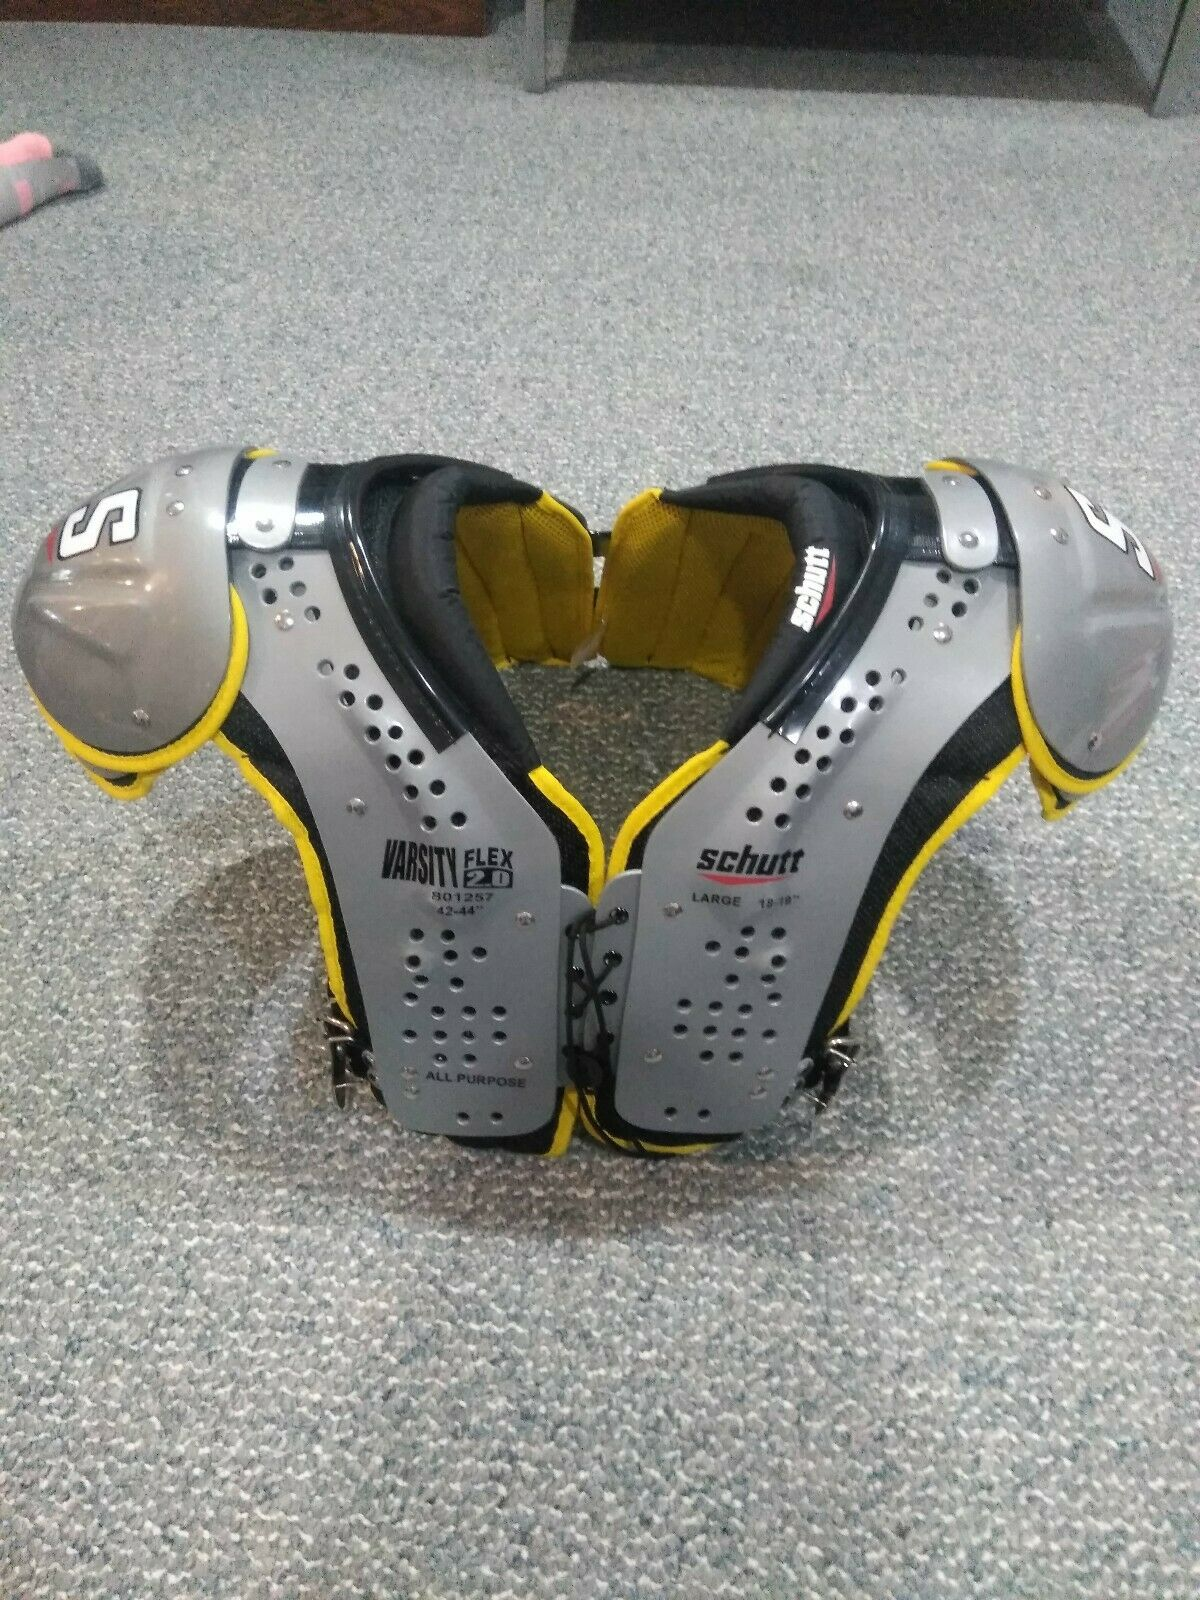 Schutt Varsity Flex Shoulder Pad Large Adult All Purpose